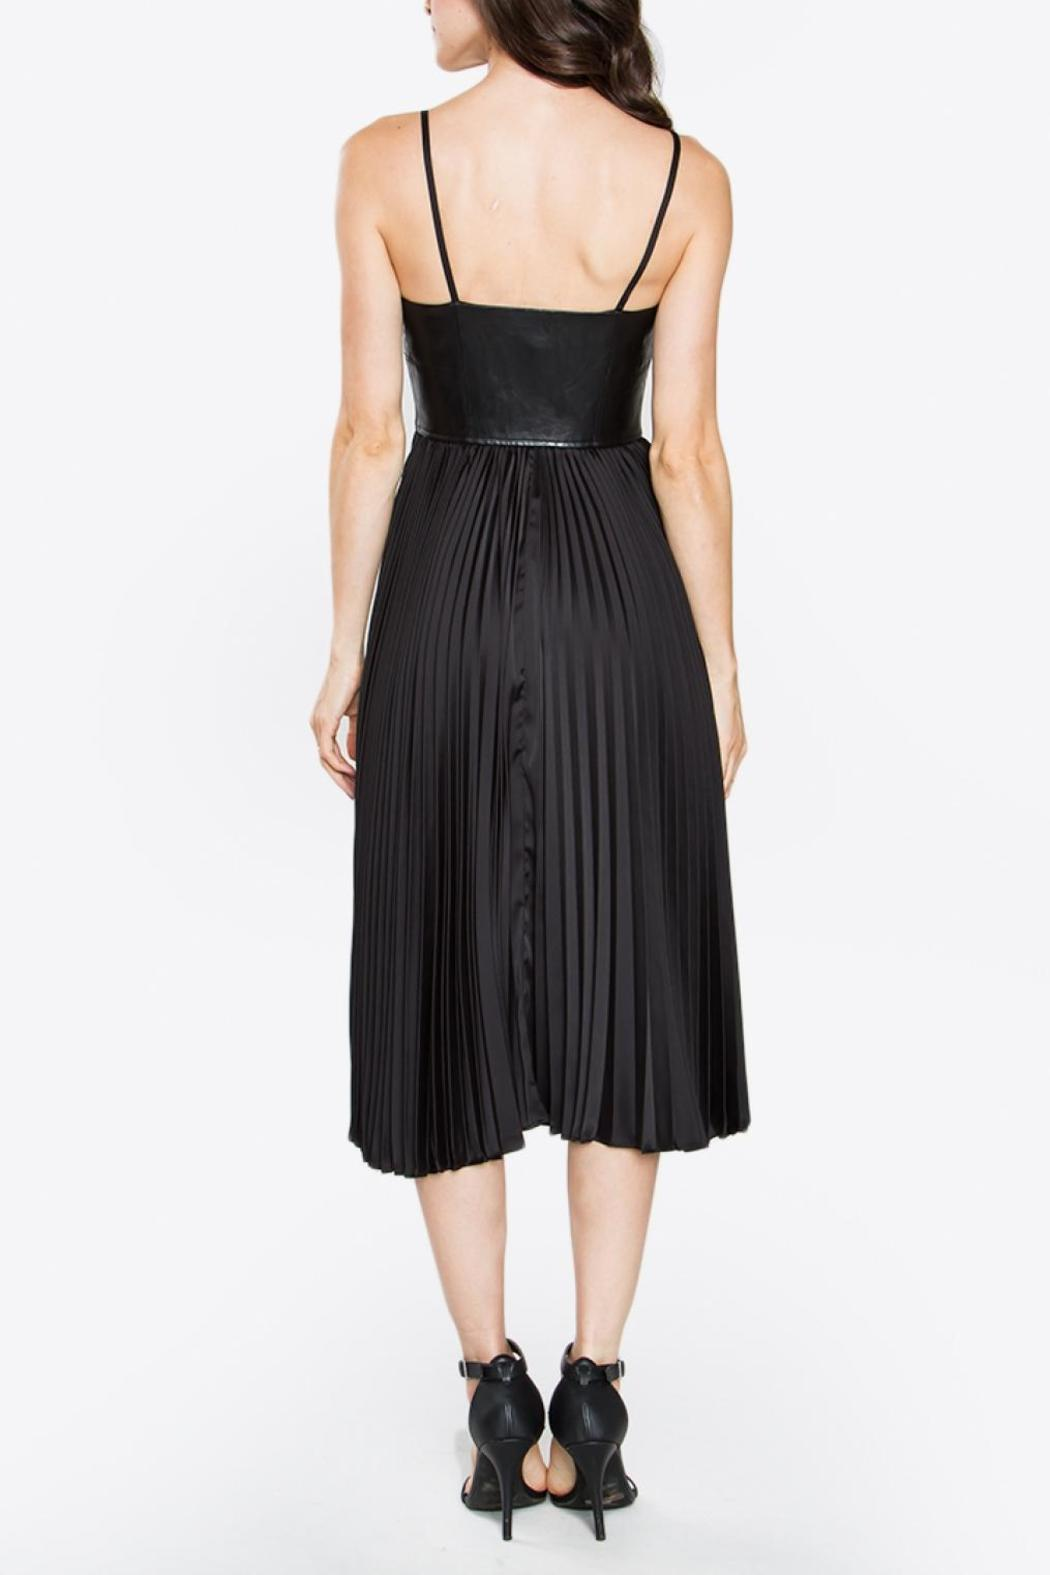 Sugarlips Bustier Pleated Dress - Side Cropped Image